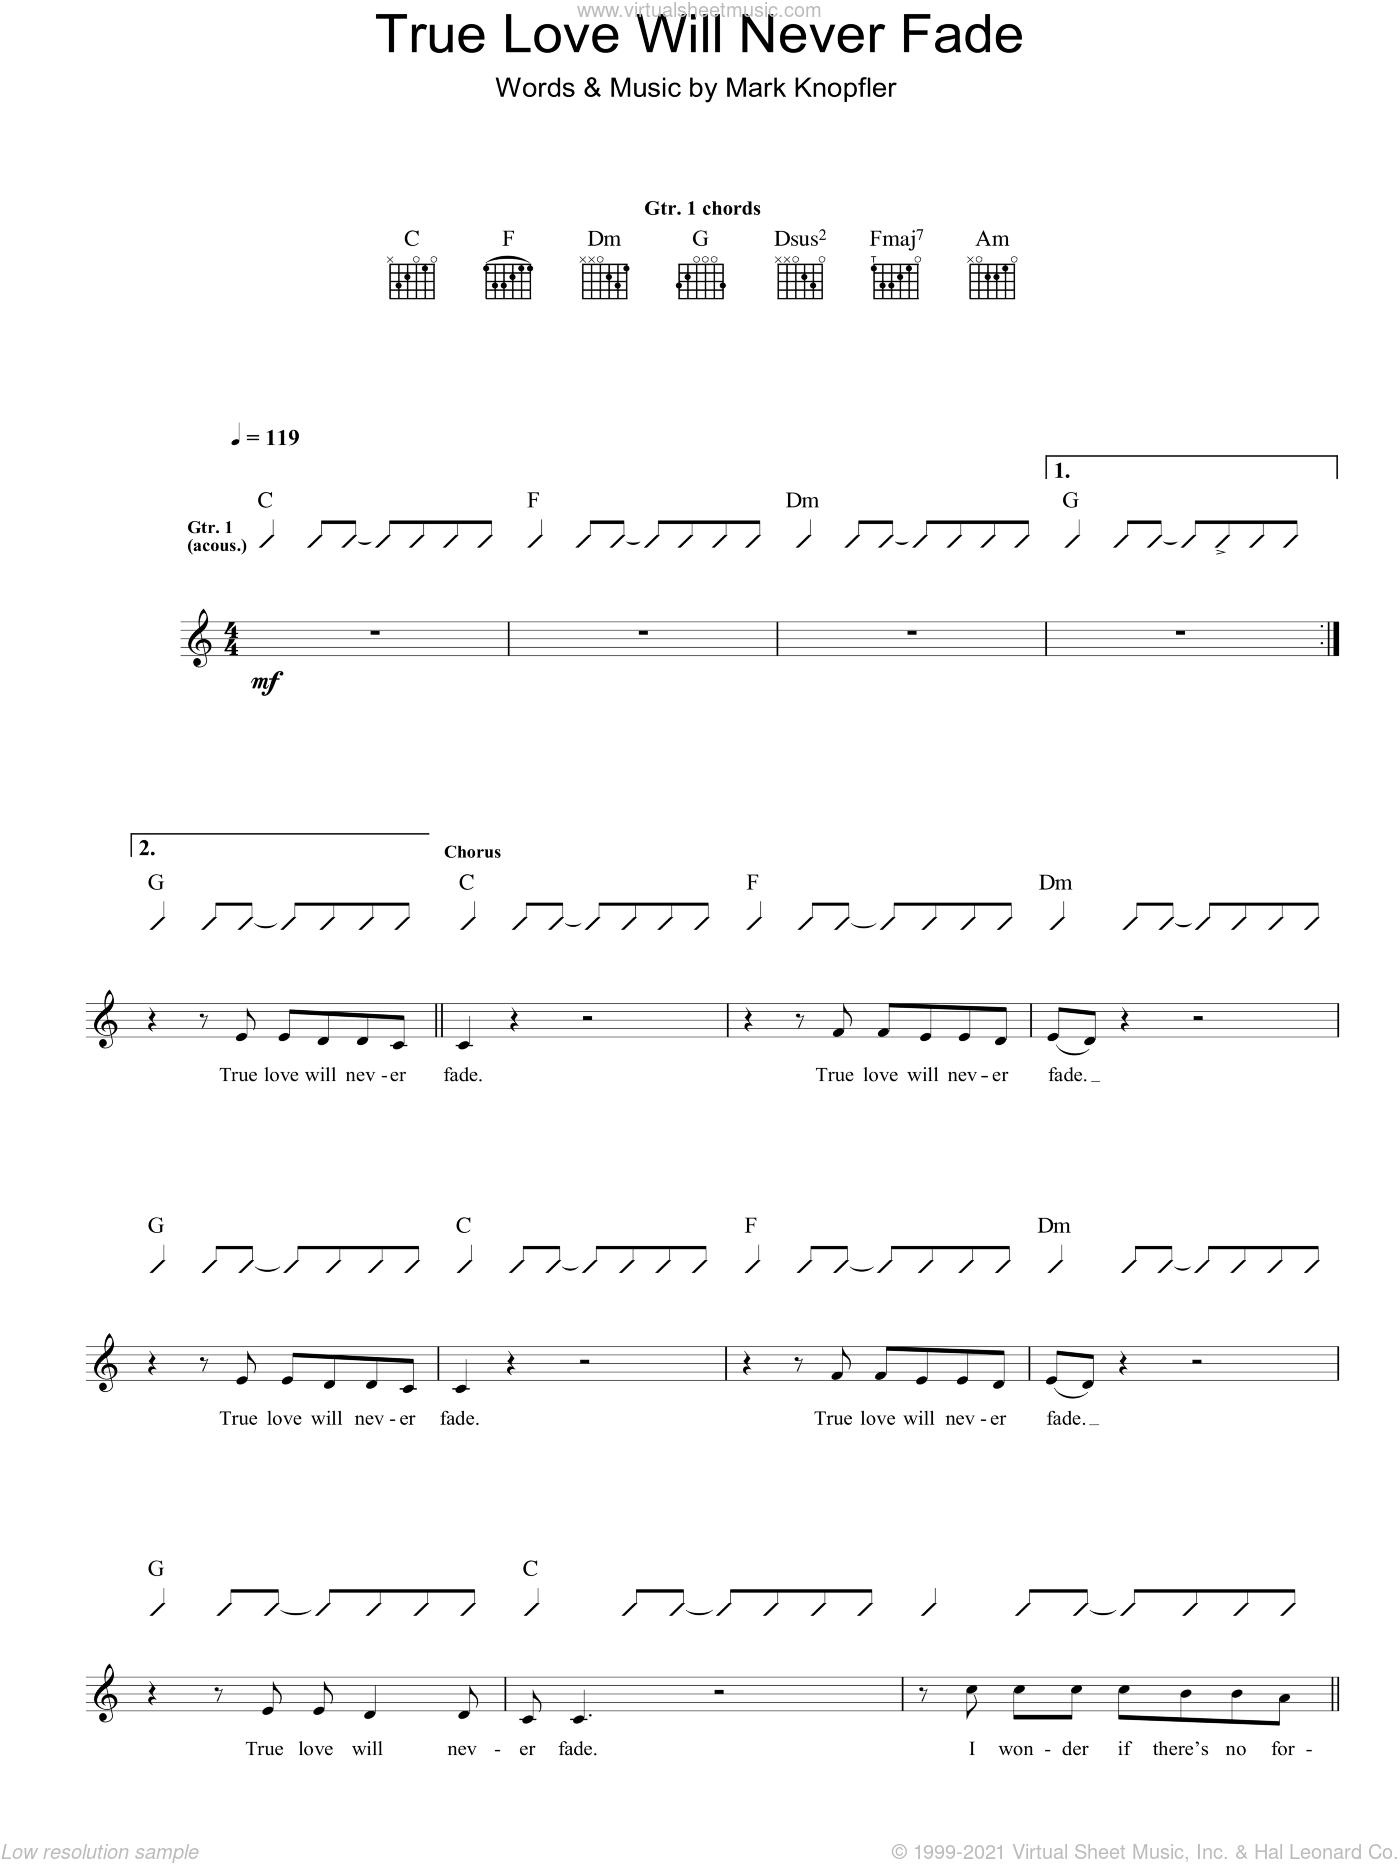 True Love Will Never Fade sheet music for guitar (tablature) by Mark Knopfler. Score Image Preview.